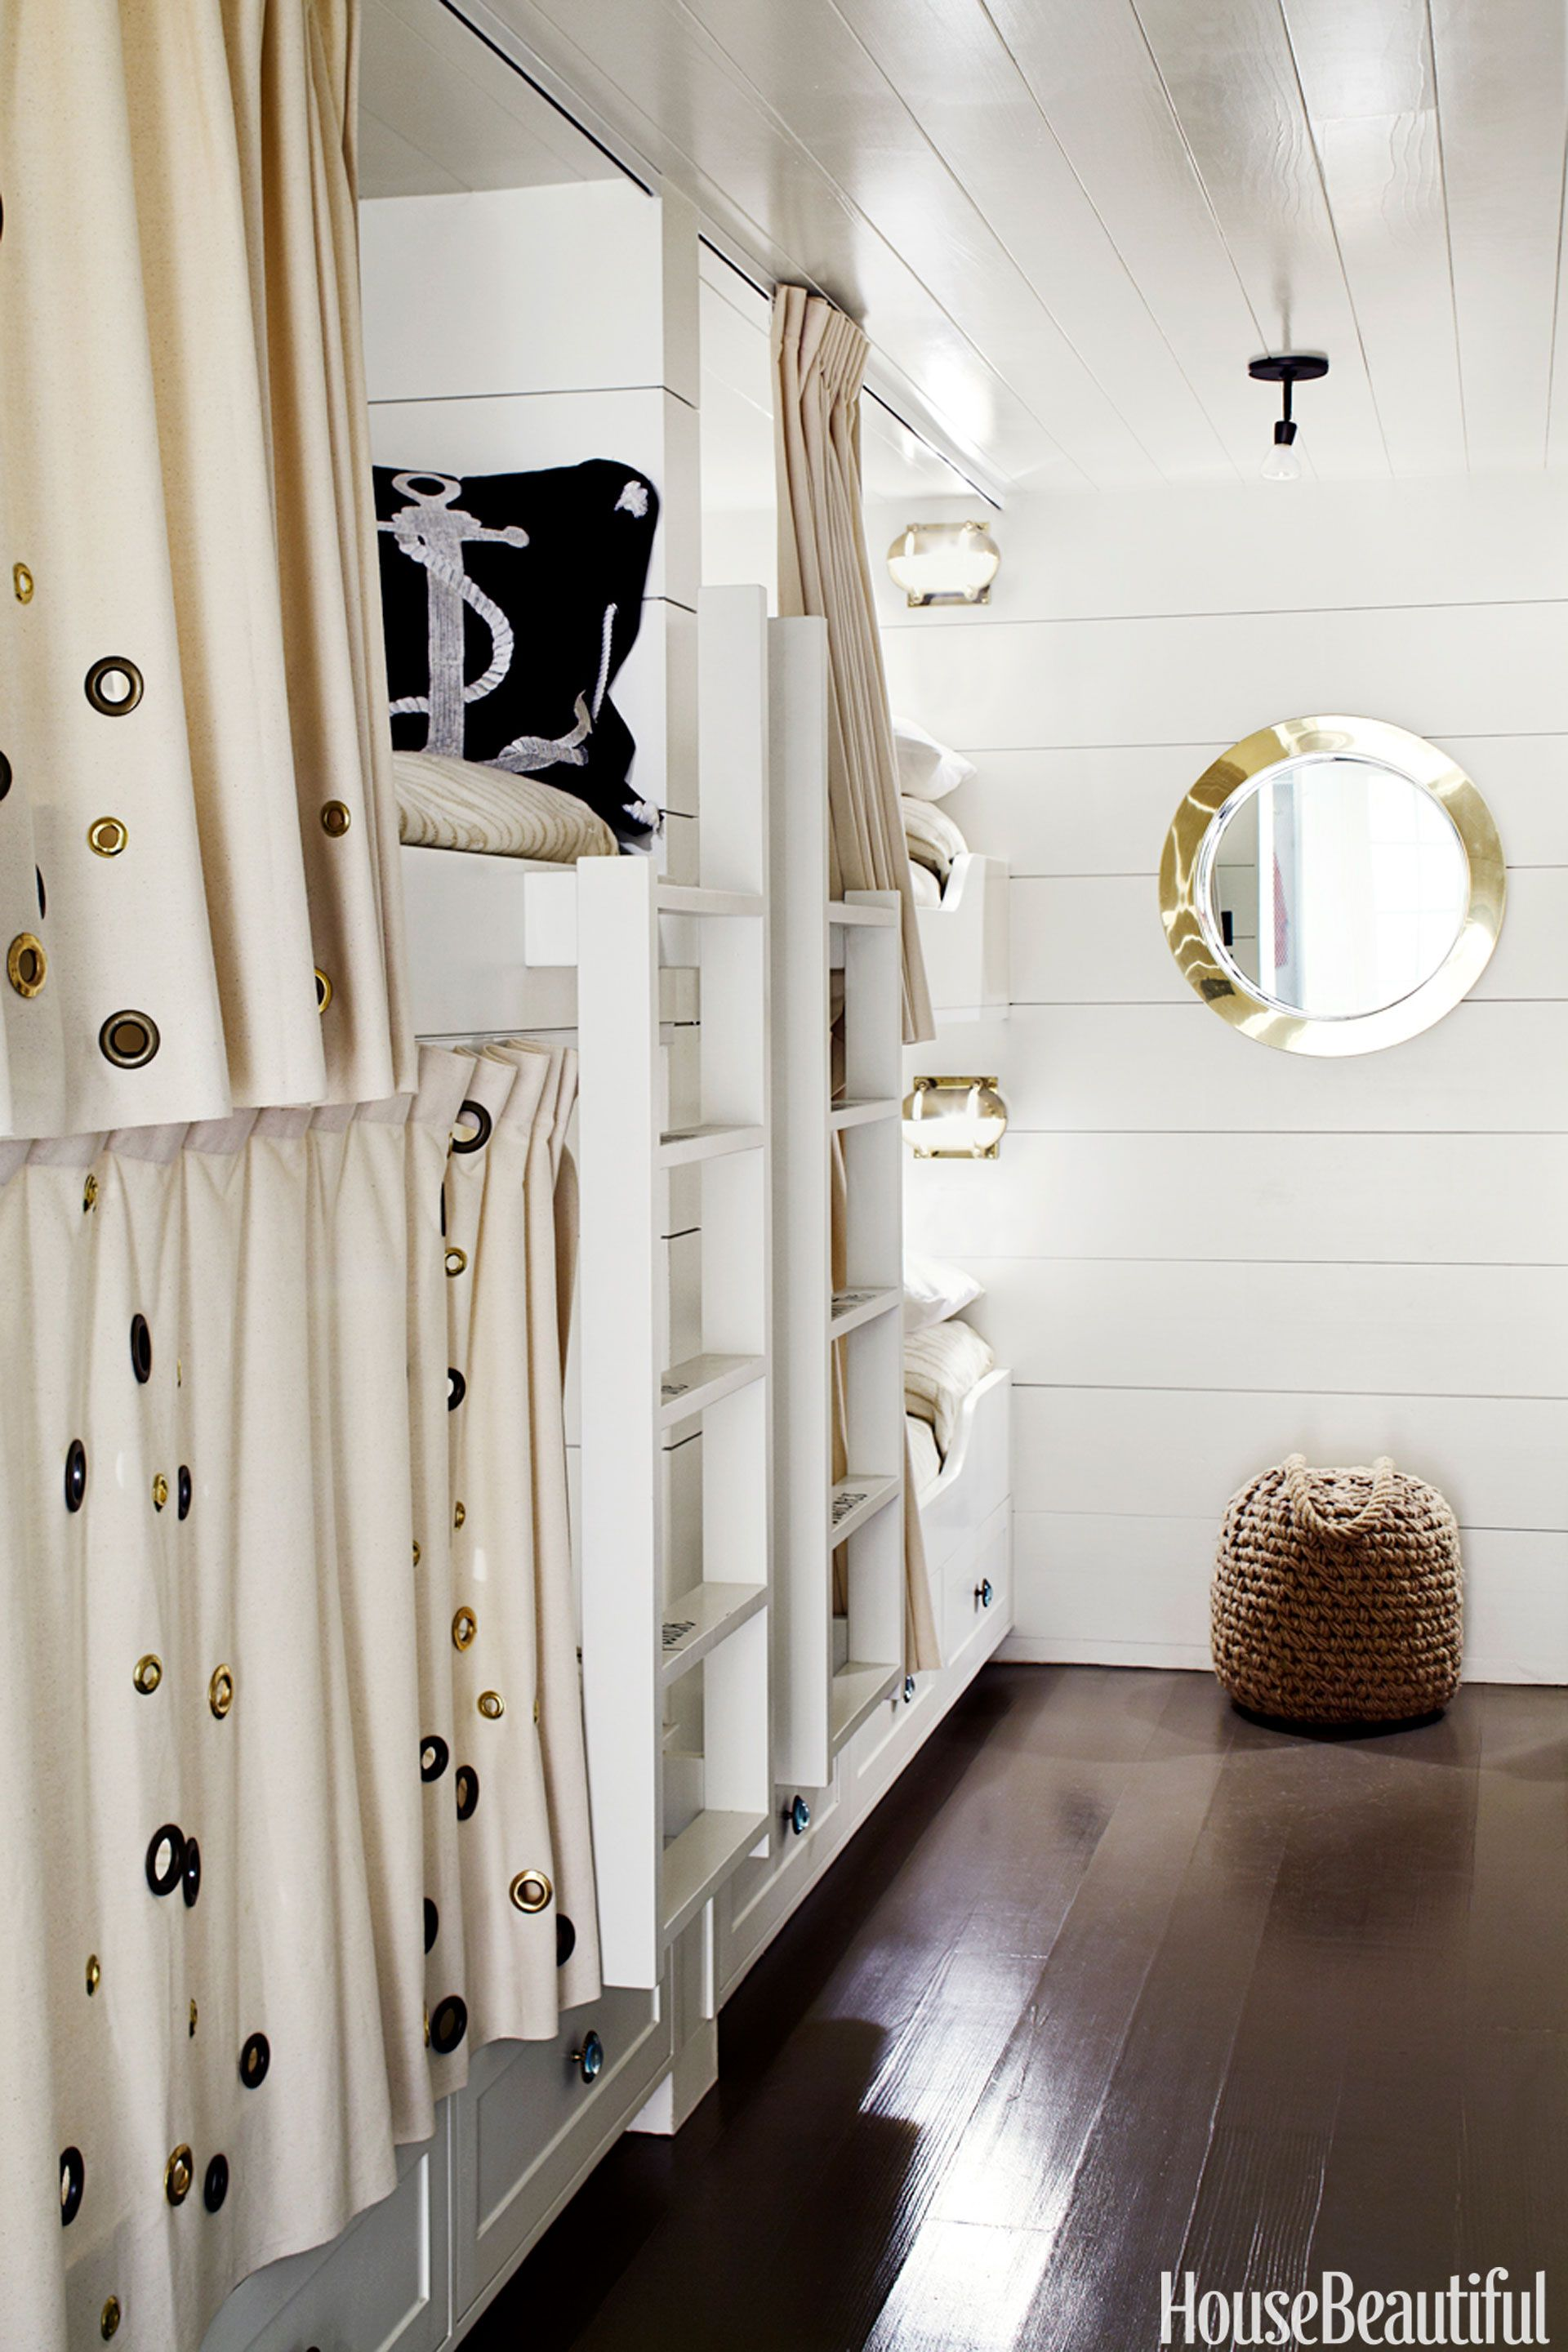 Small Room Design - Decorating Ideas for Tiny Rooms